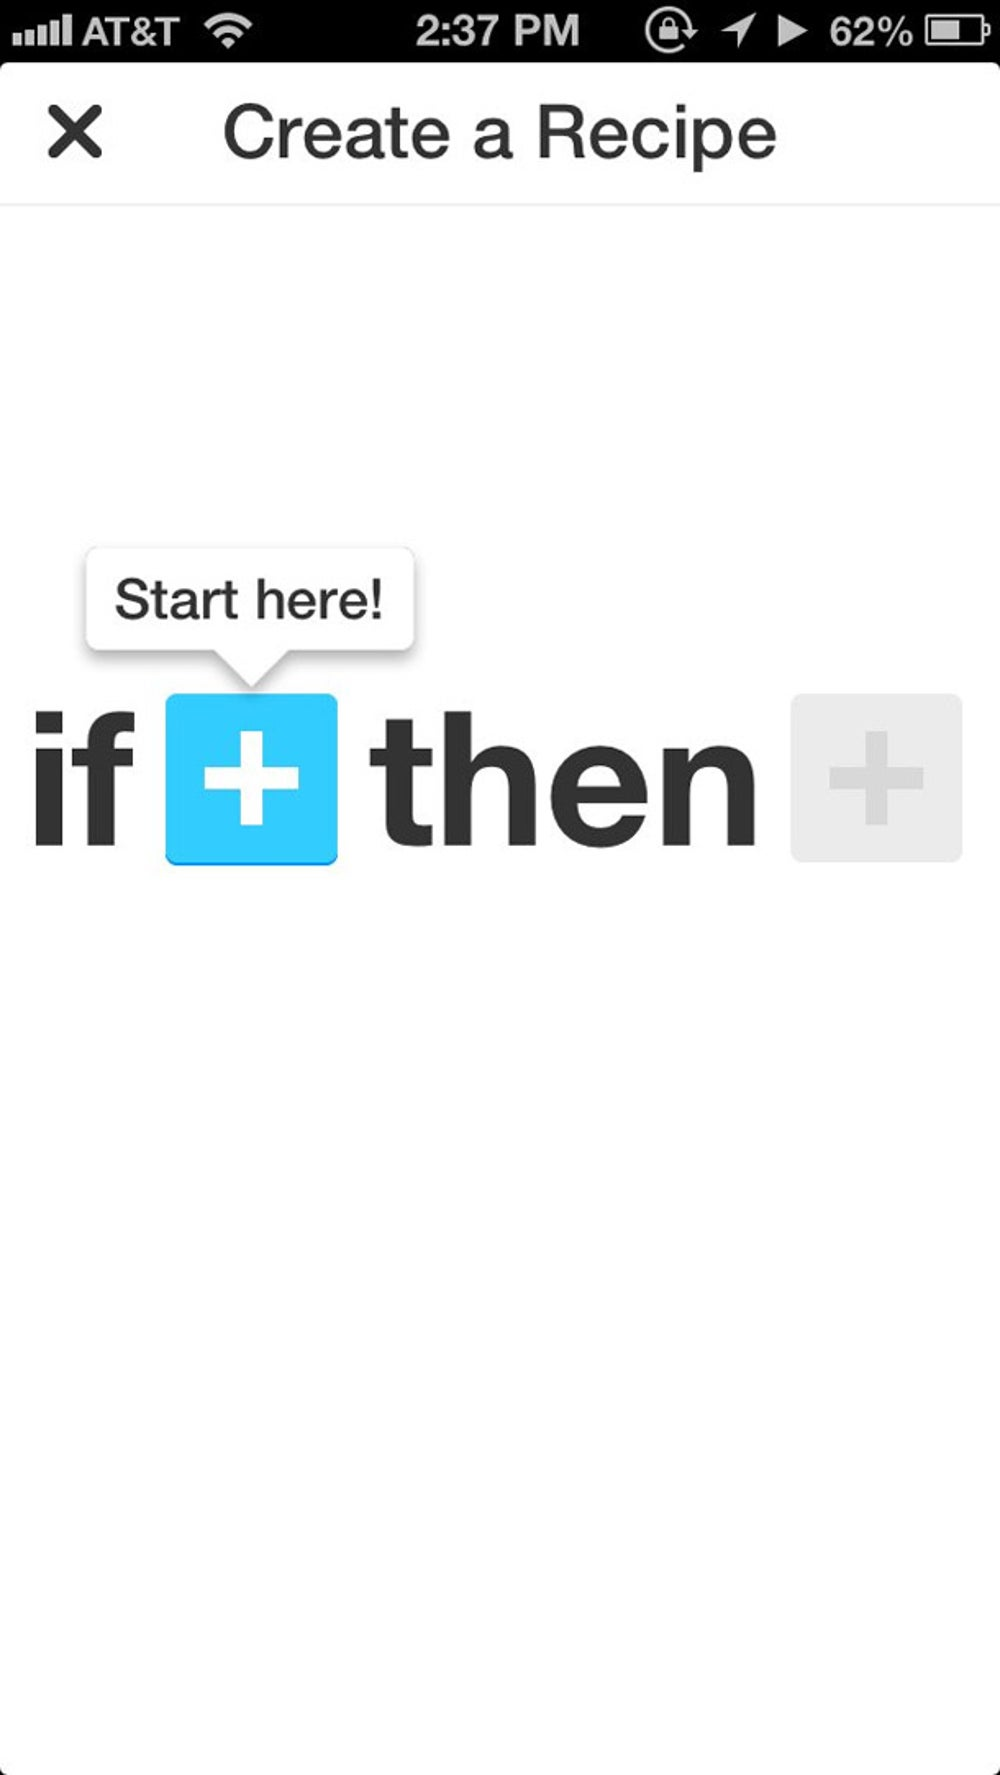 Besides using recipes that others created, IFTTT lets you create your own too.